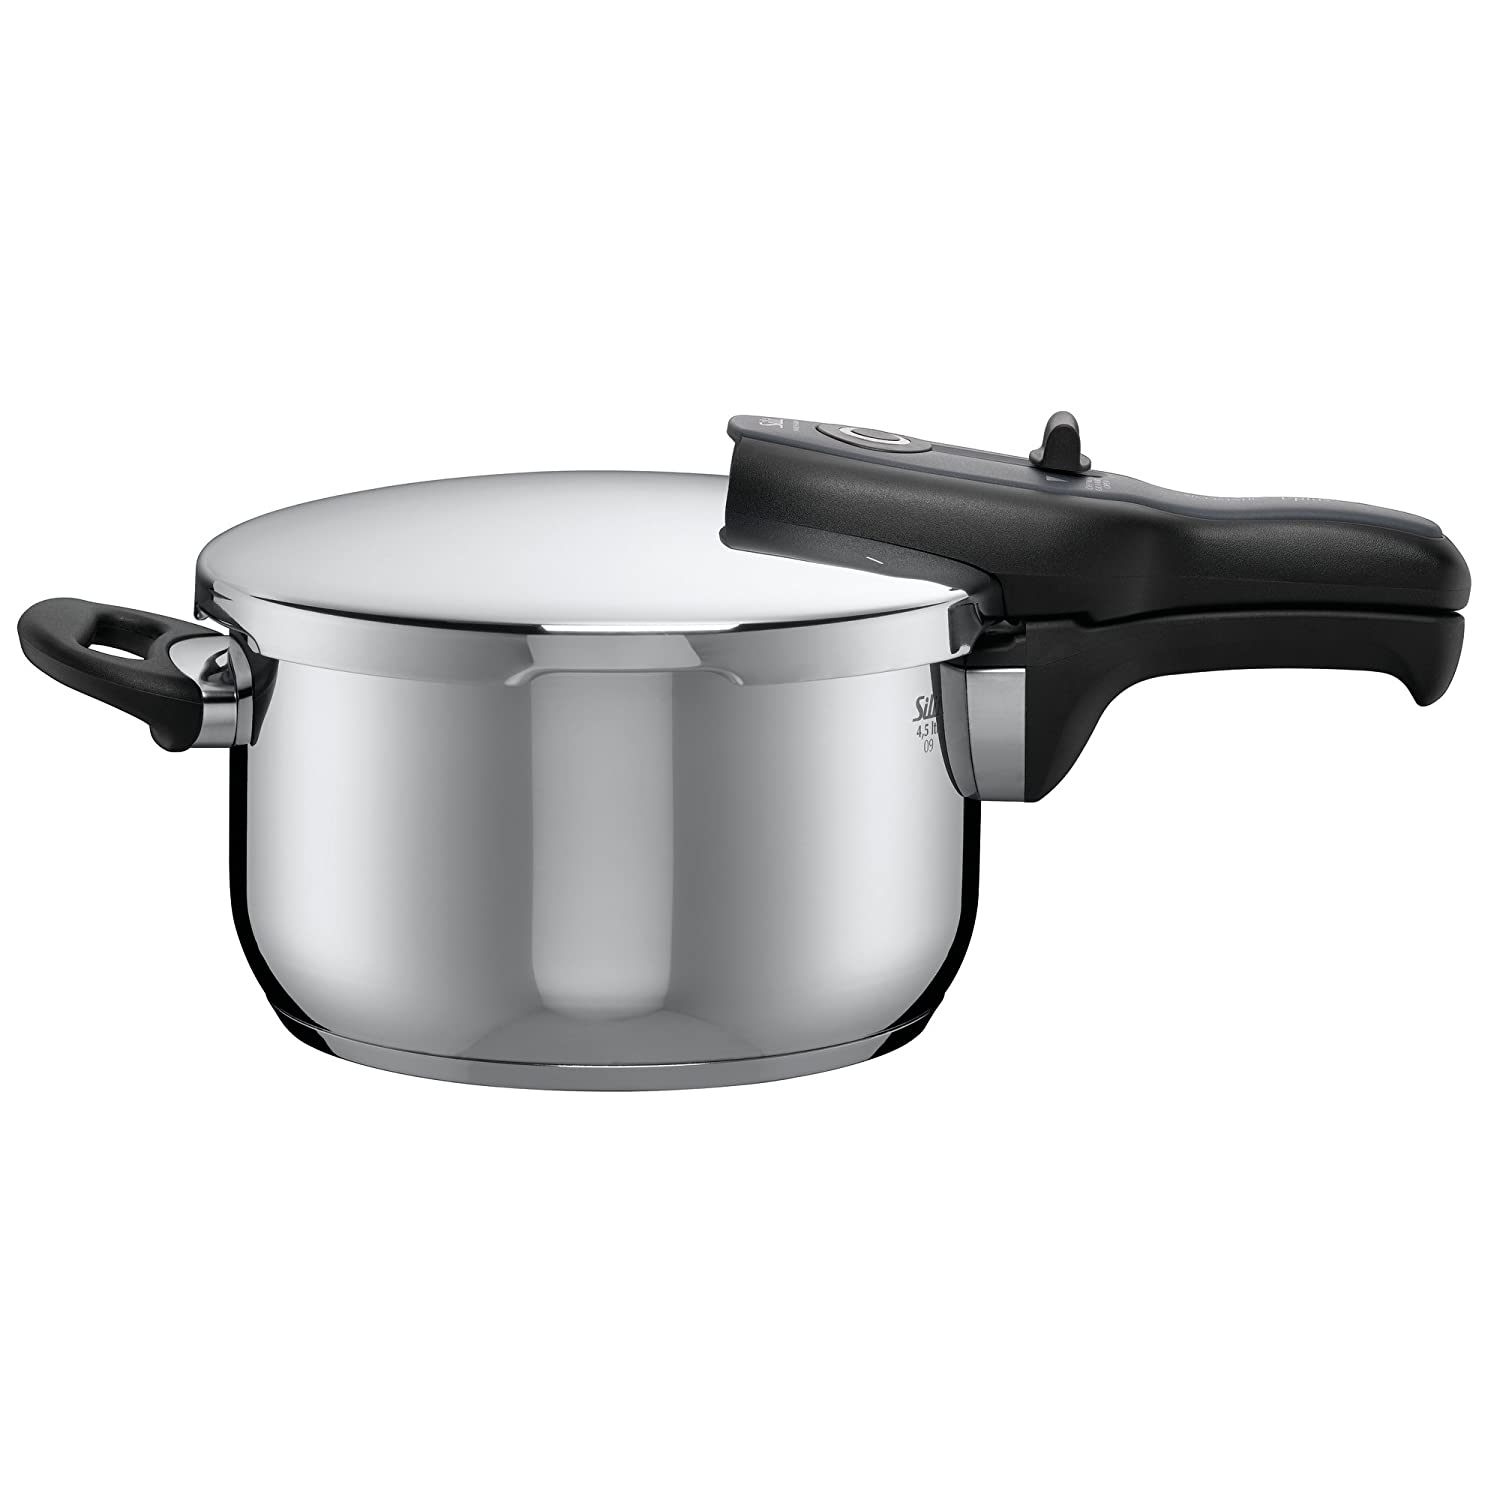 Silit Sicomatic t-plus pressure cooker, without insert, 4.5l, Stainless steel, 8205602214 2120260851